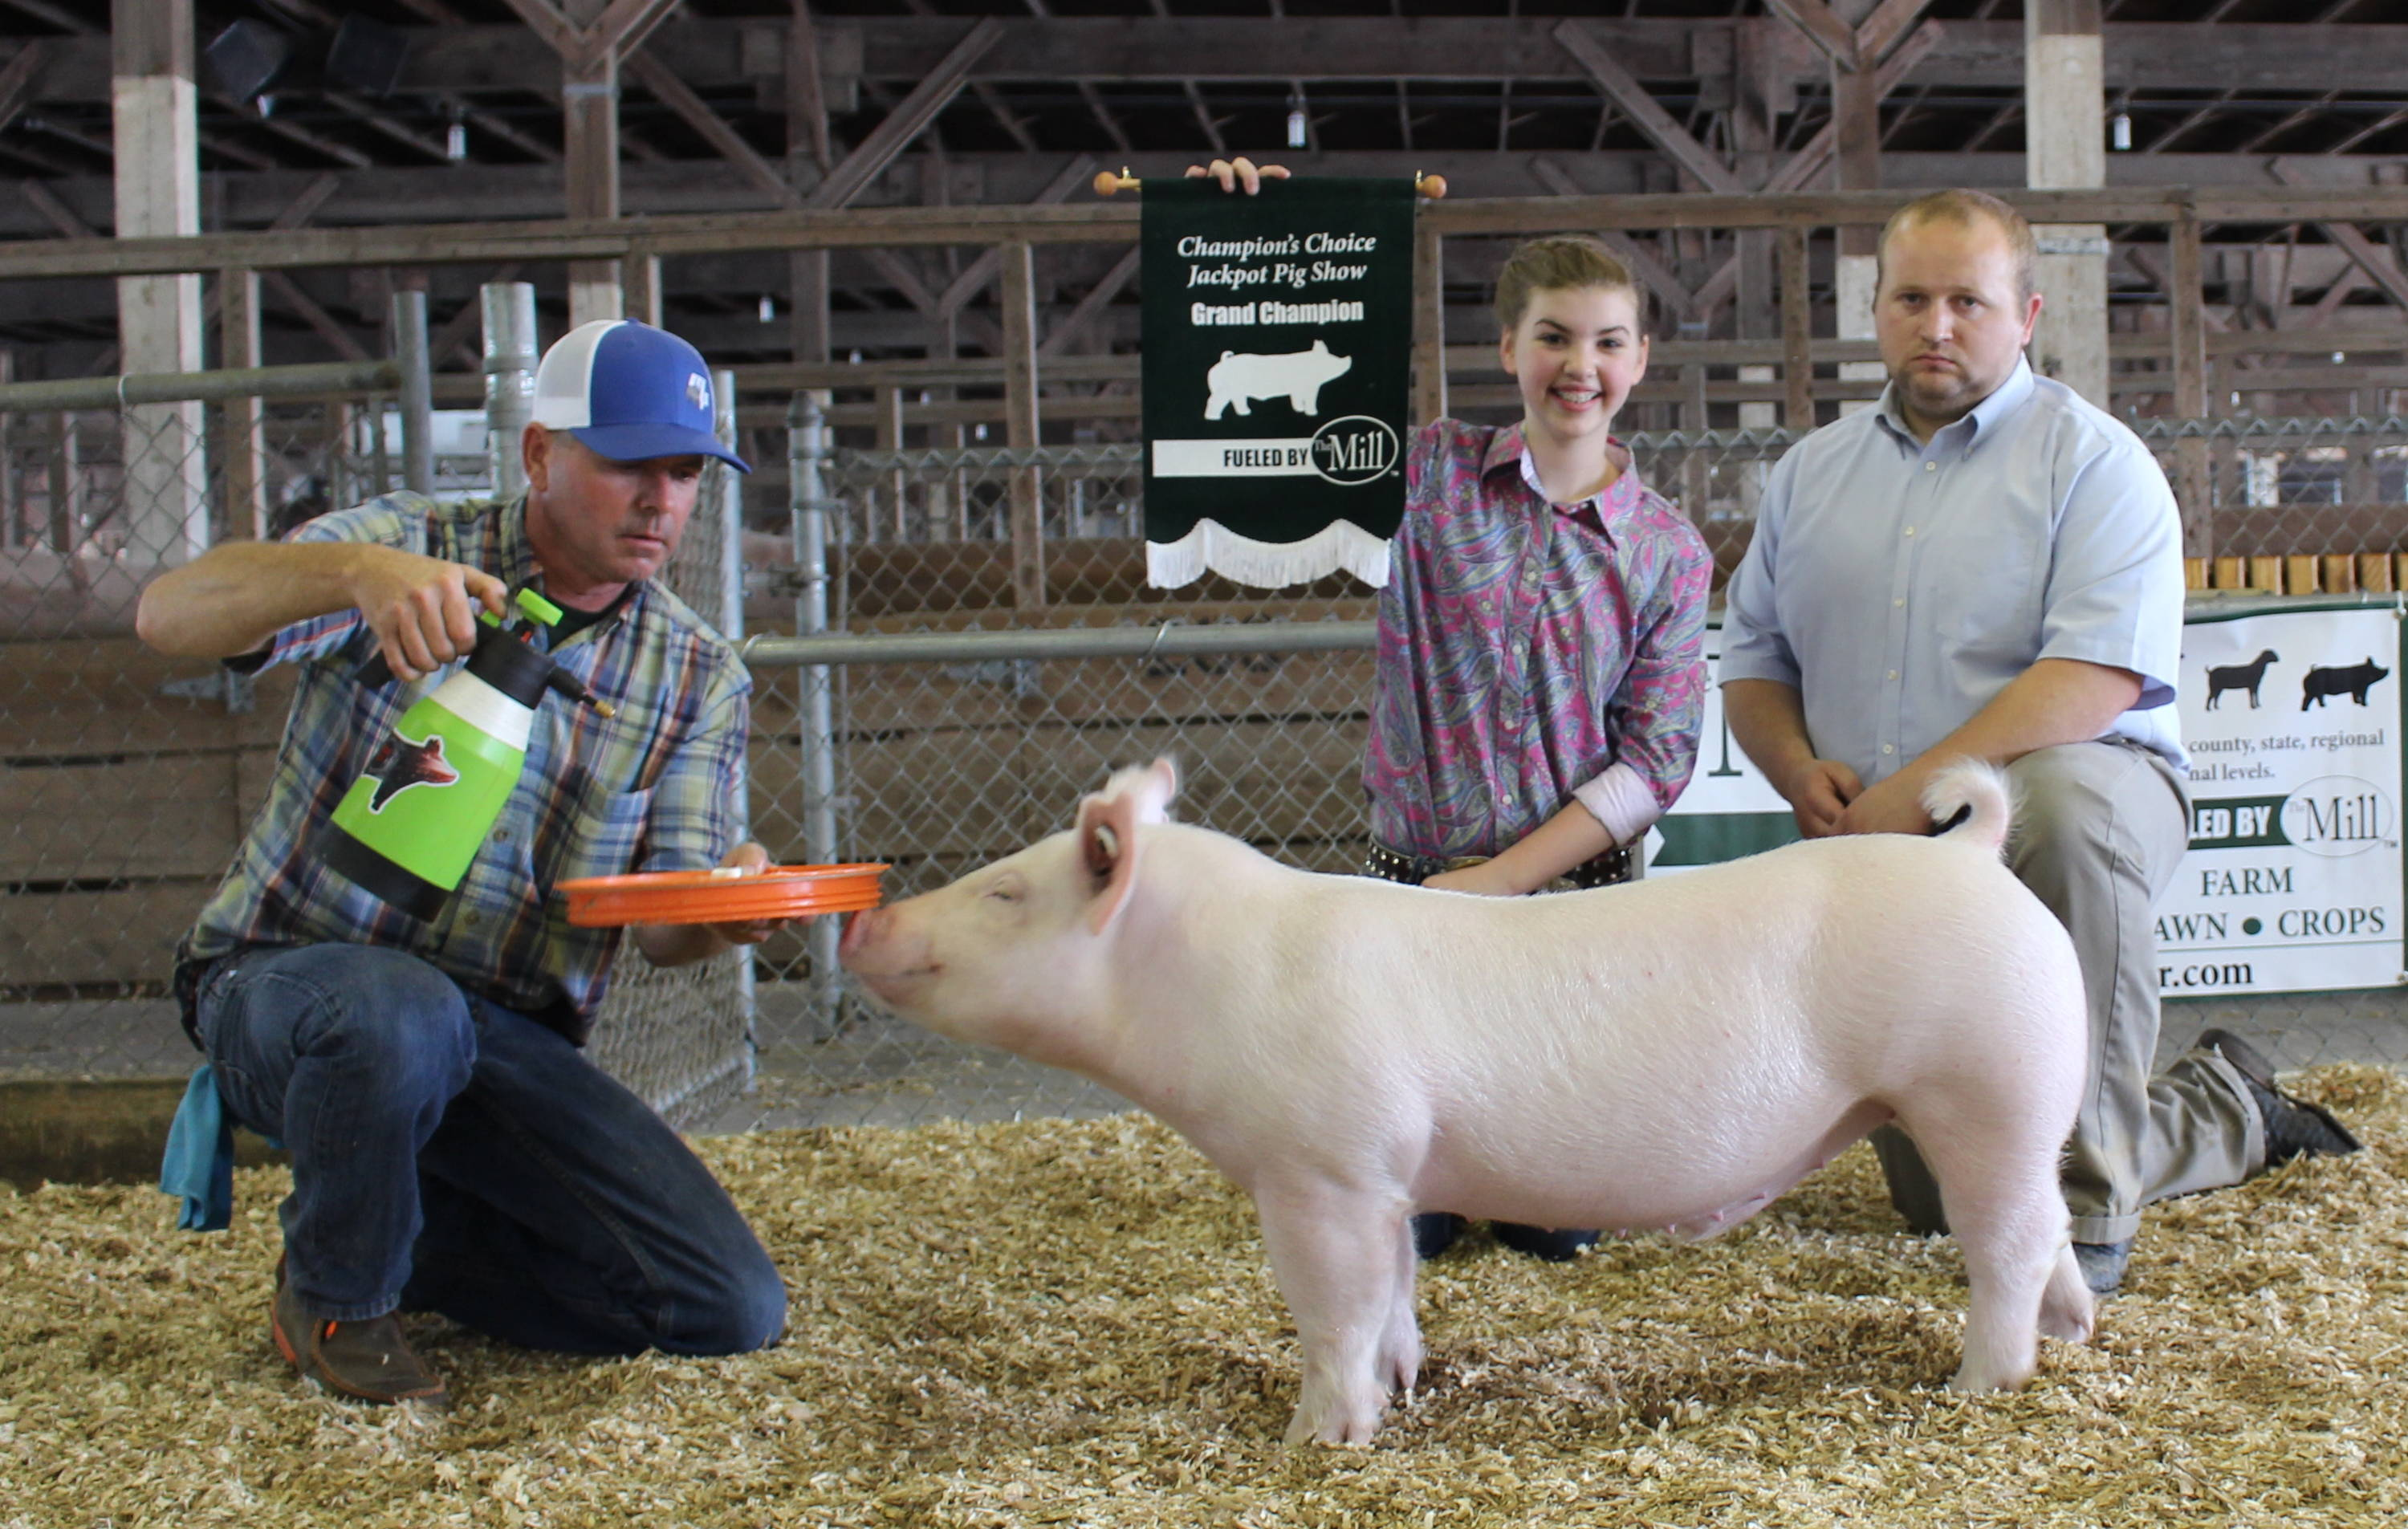 Jackpot Pig Show - The Mill - Bel Air, Black Horse, Red Lion